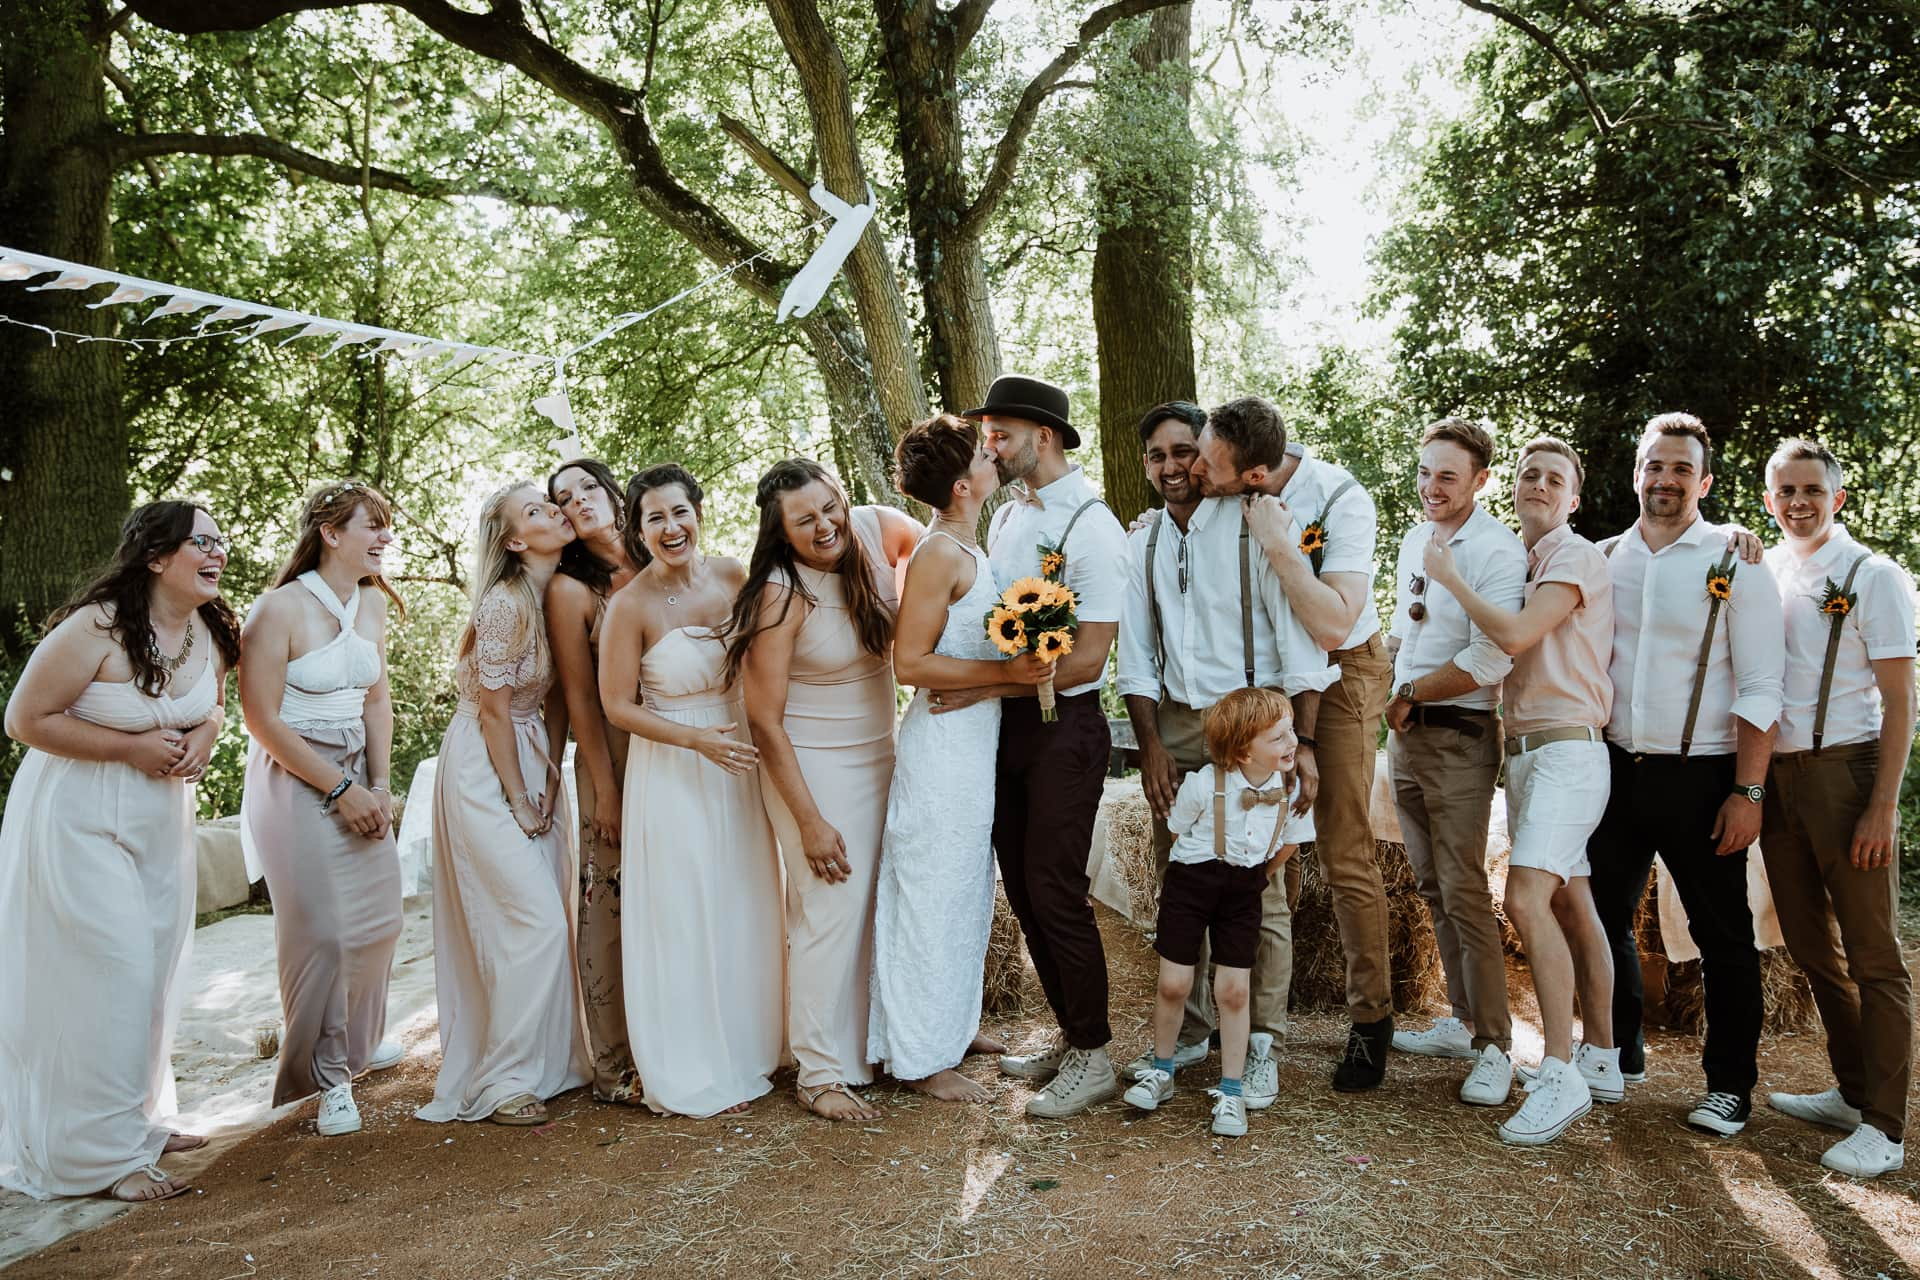 Fun wedding group shot with wedding party laughing as Bride and Groom kiss